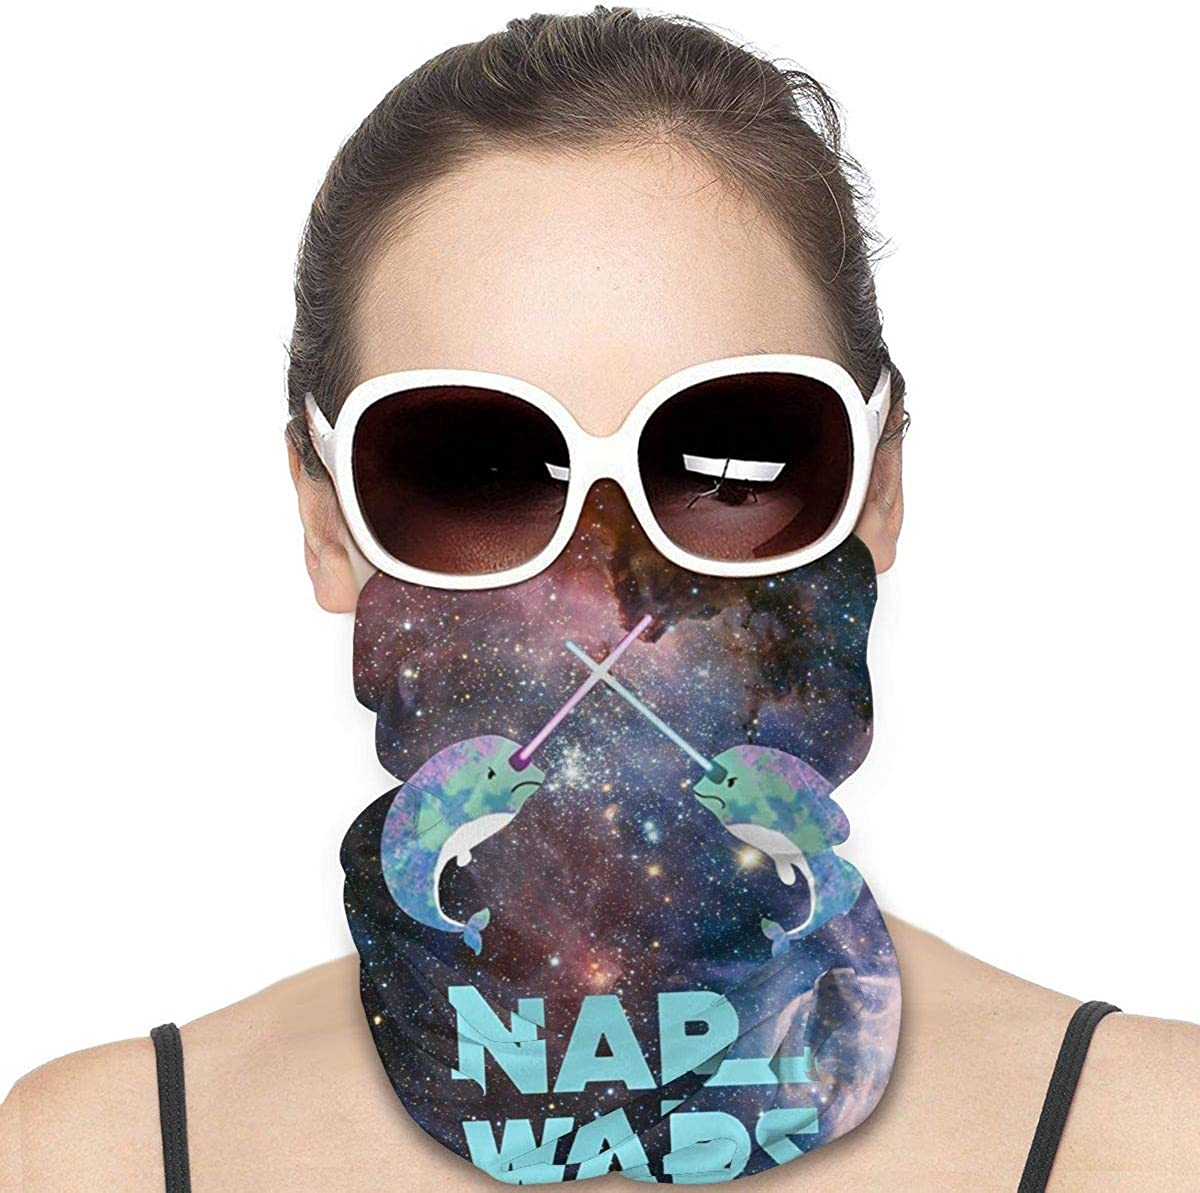 JinSPef Balaclava Sun Protection Face Mask - Starry Sky Narwhal NAR Wars Galaxys for Men Neck Gaiter Multifunctional Headwear Head Bands Neck Gaiters for Men Headwear Neck Warmer for Men